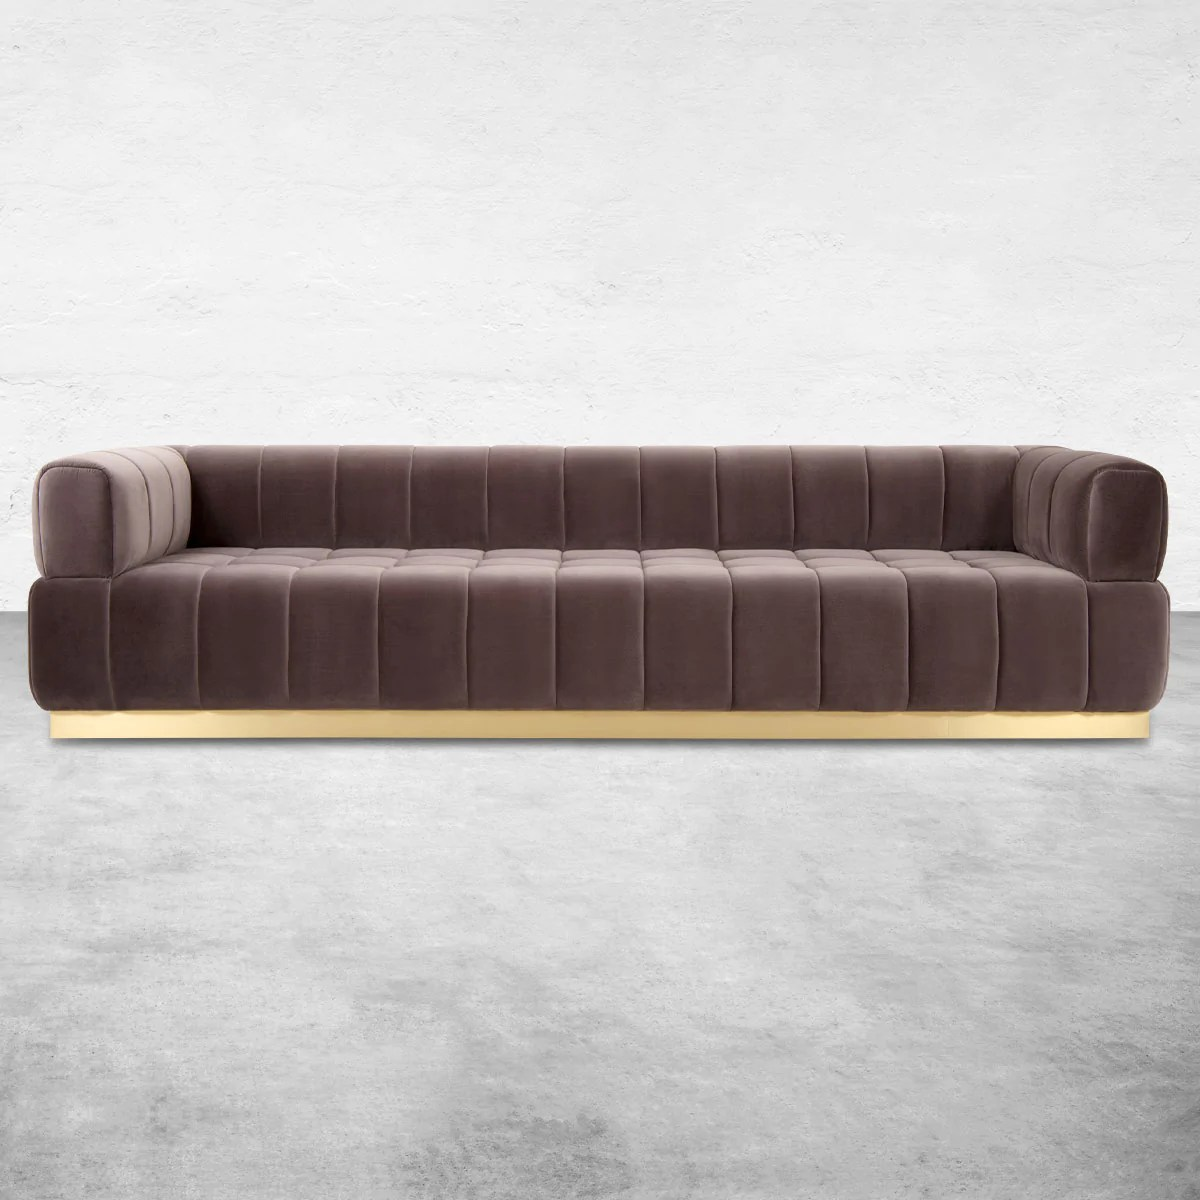 Velvet Sofas Couches Modern Furniture Modshop